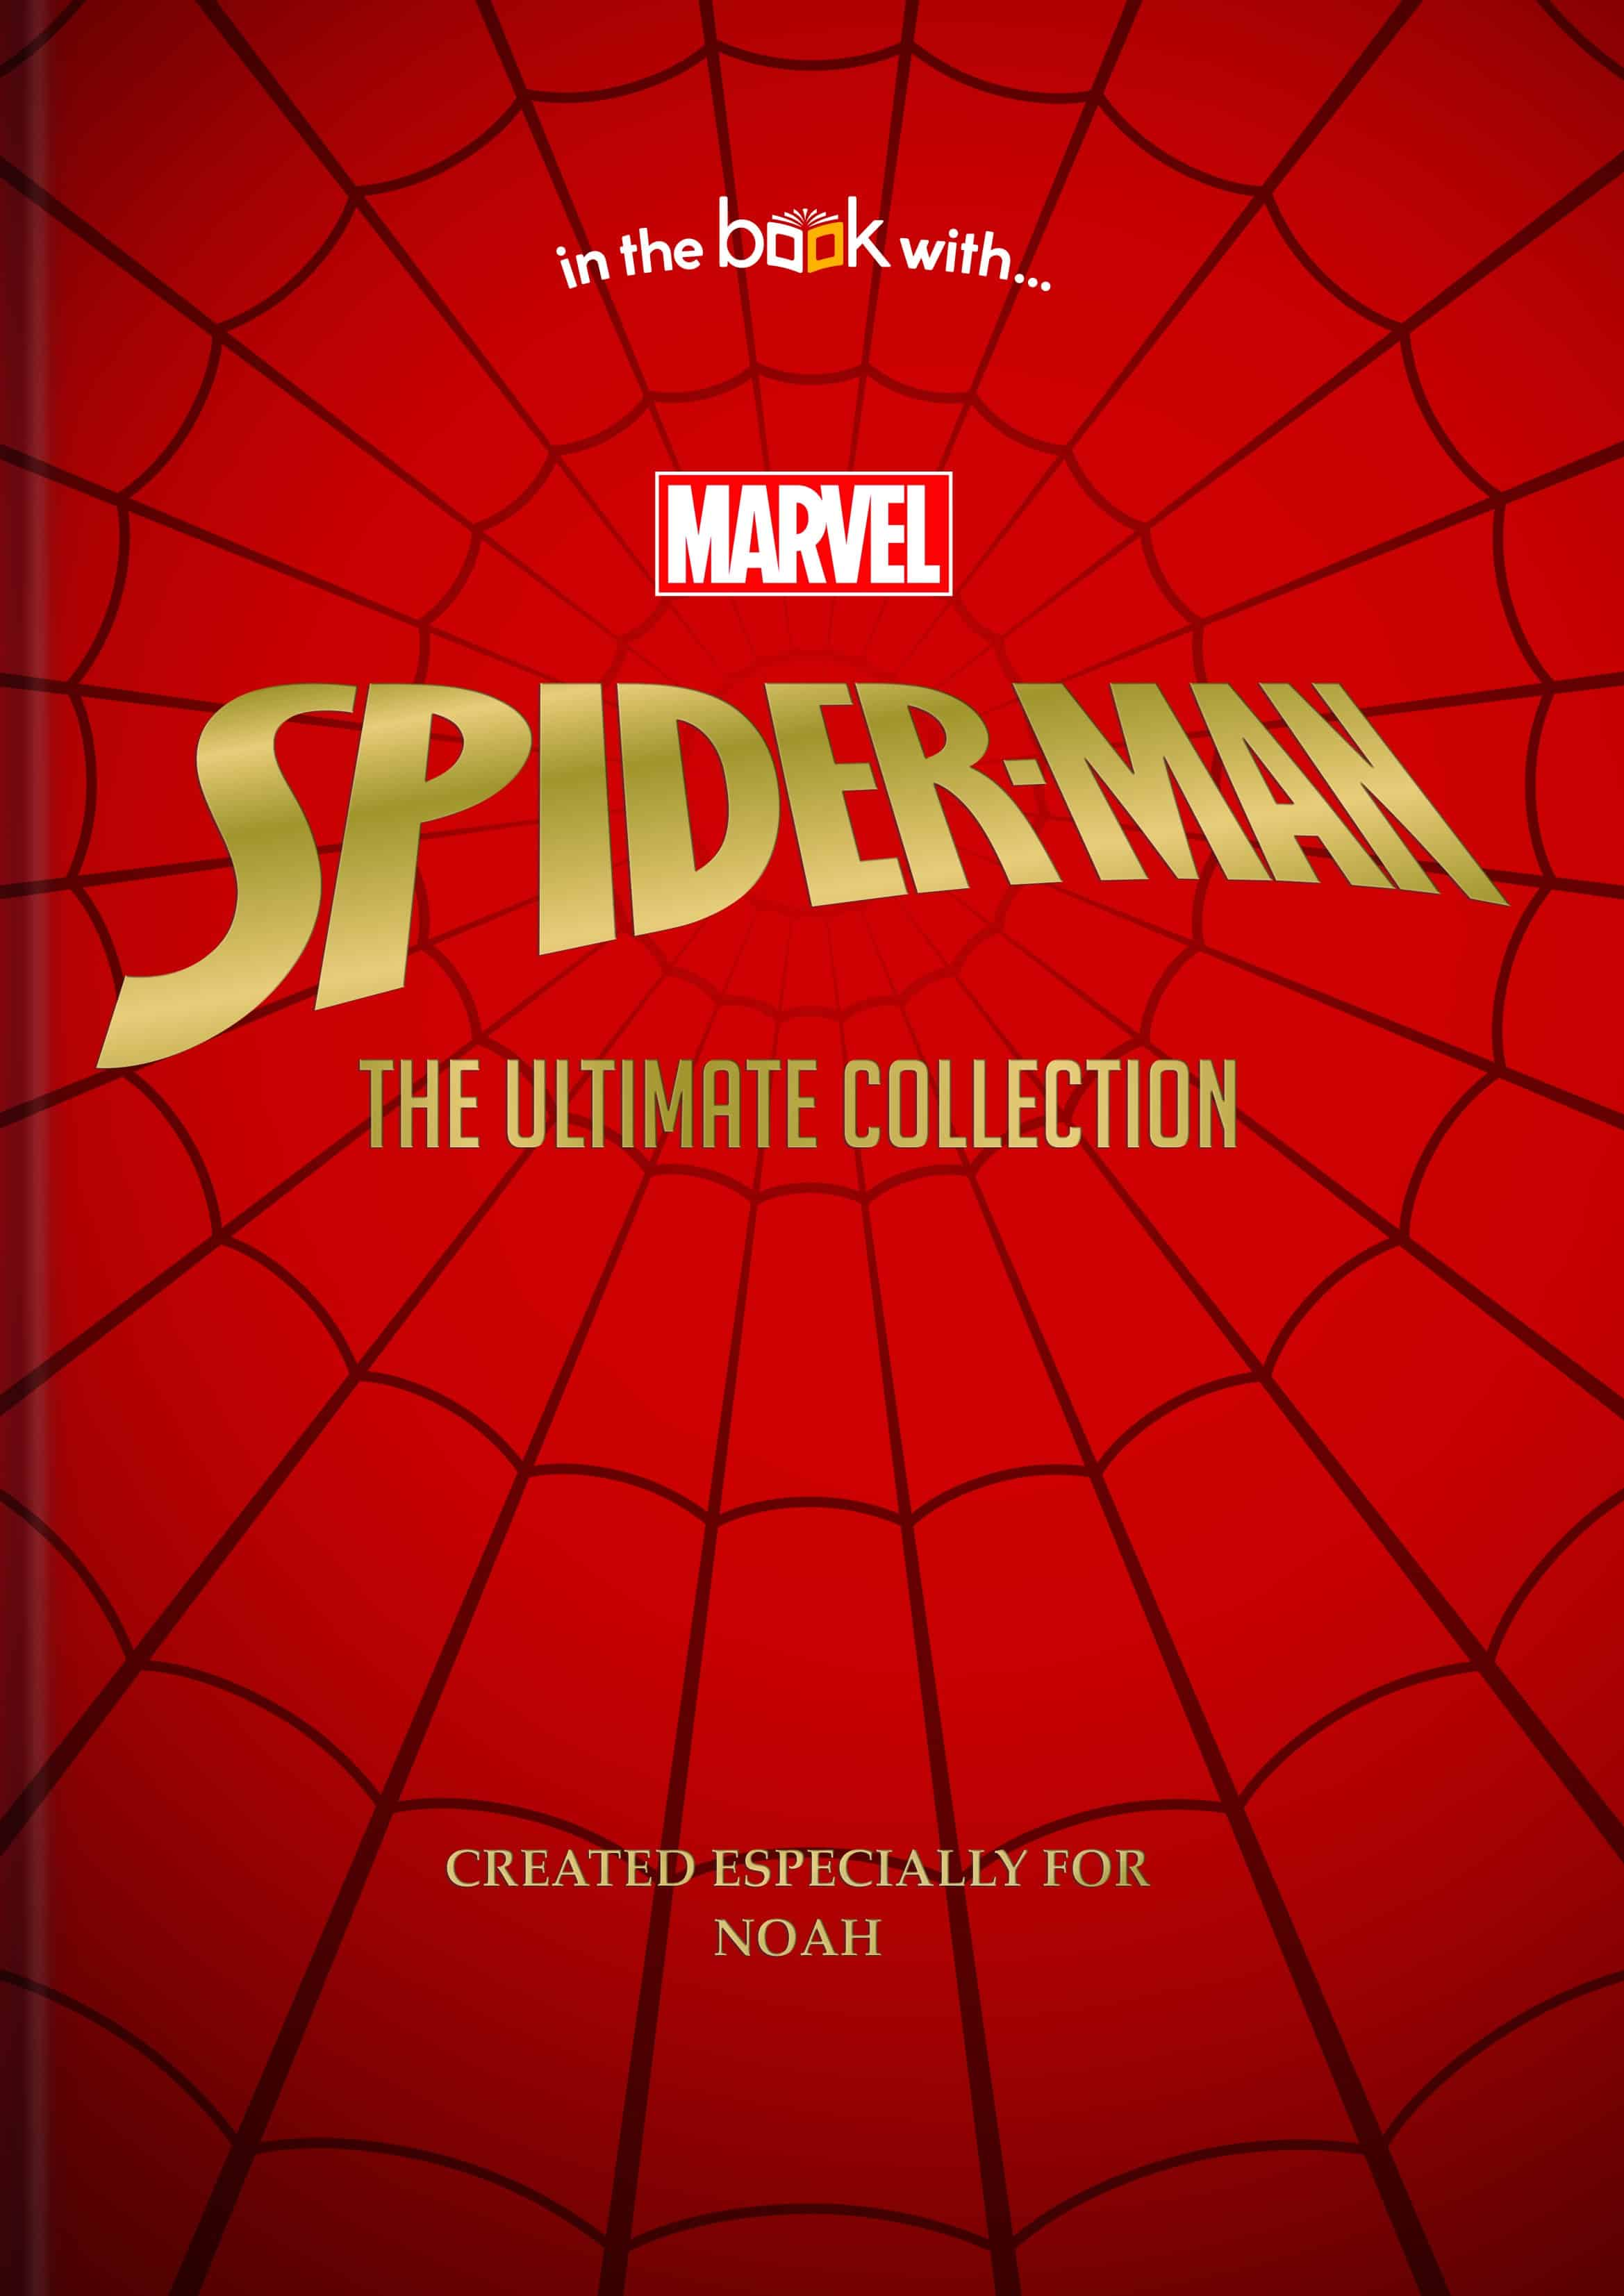 spiderman cover image